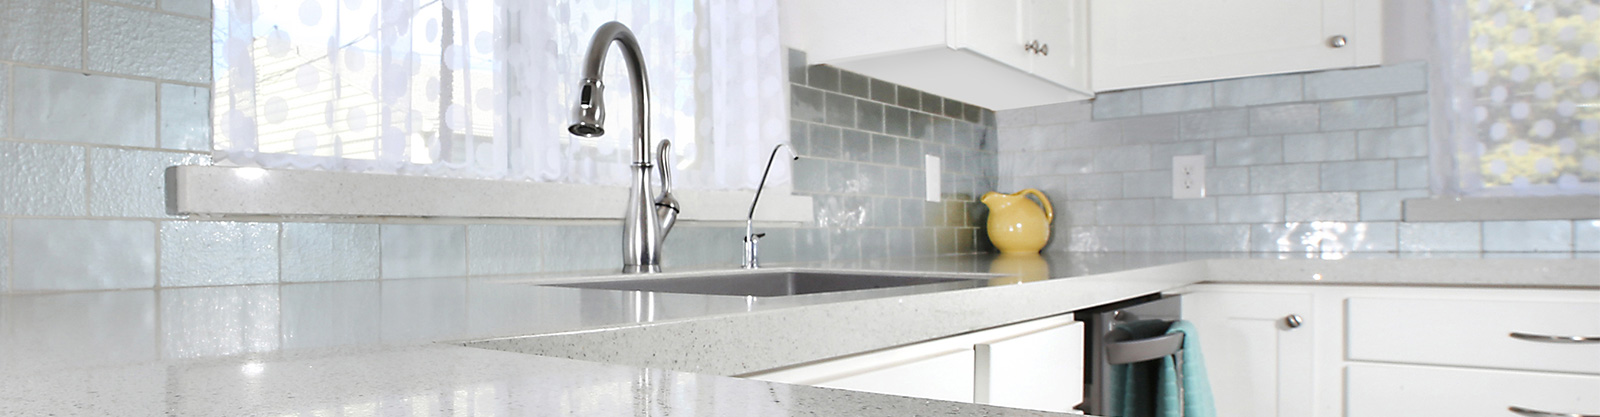 A kitchen with white speckled countertops and a blue brick backsplash. The angle appears as if the camera was set on the countertop.